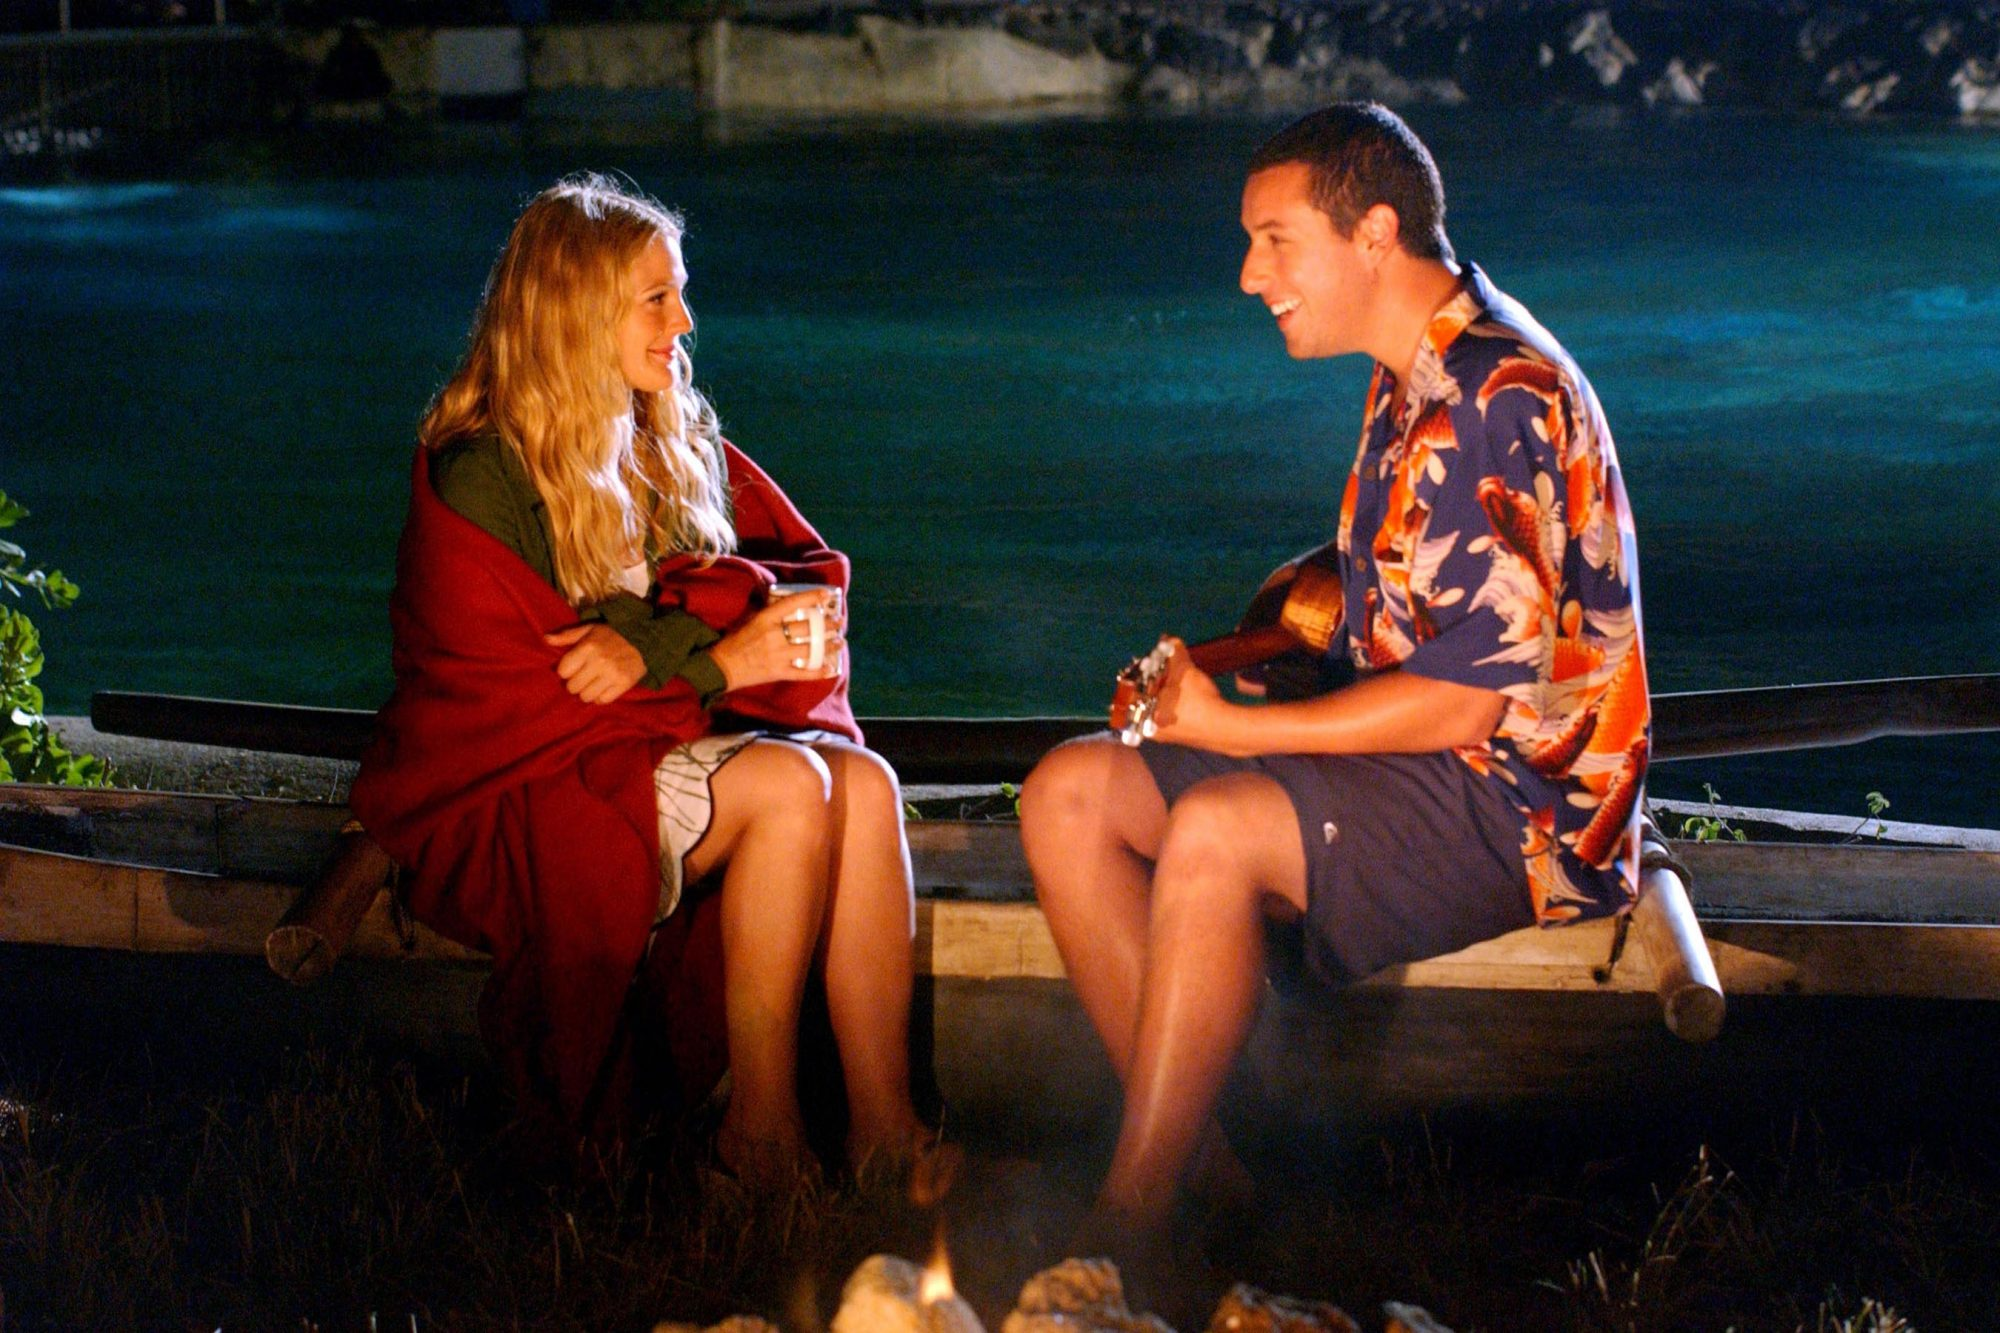 50 First Dates - 2004